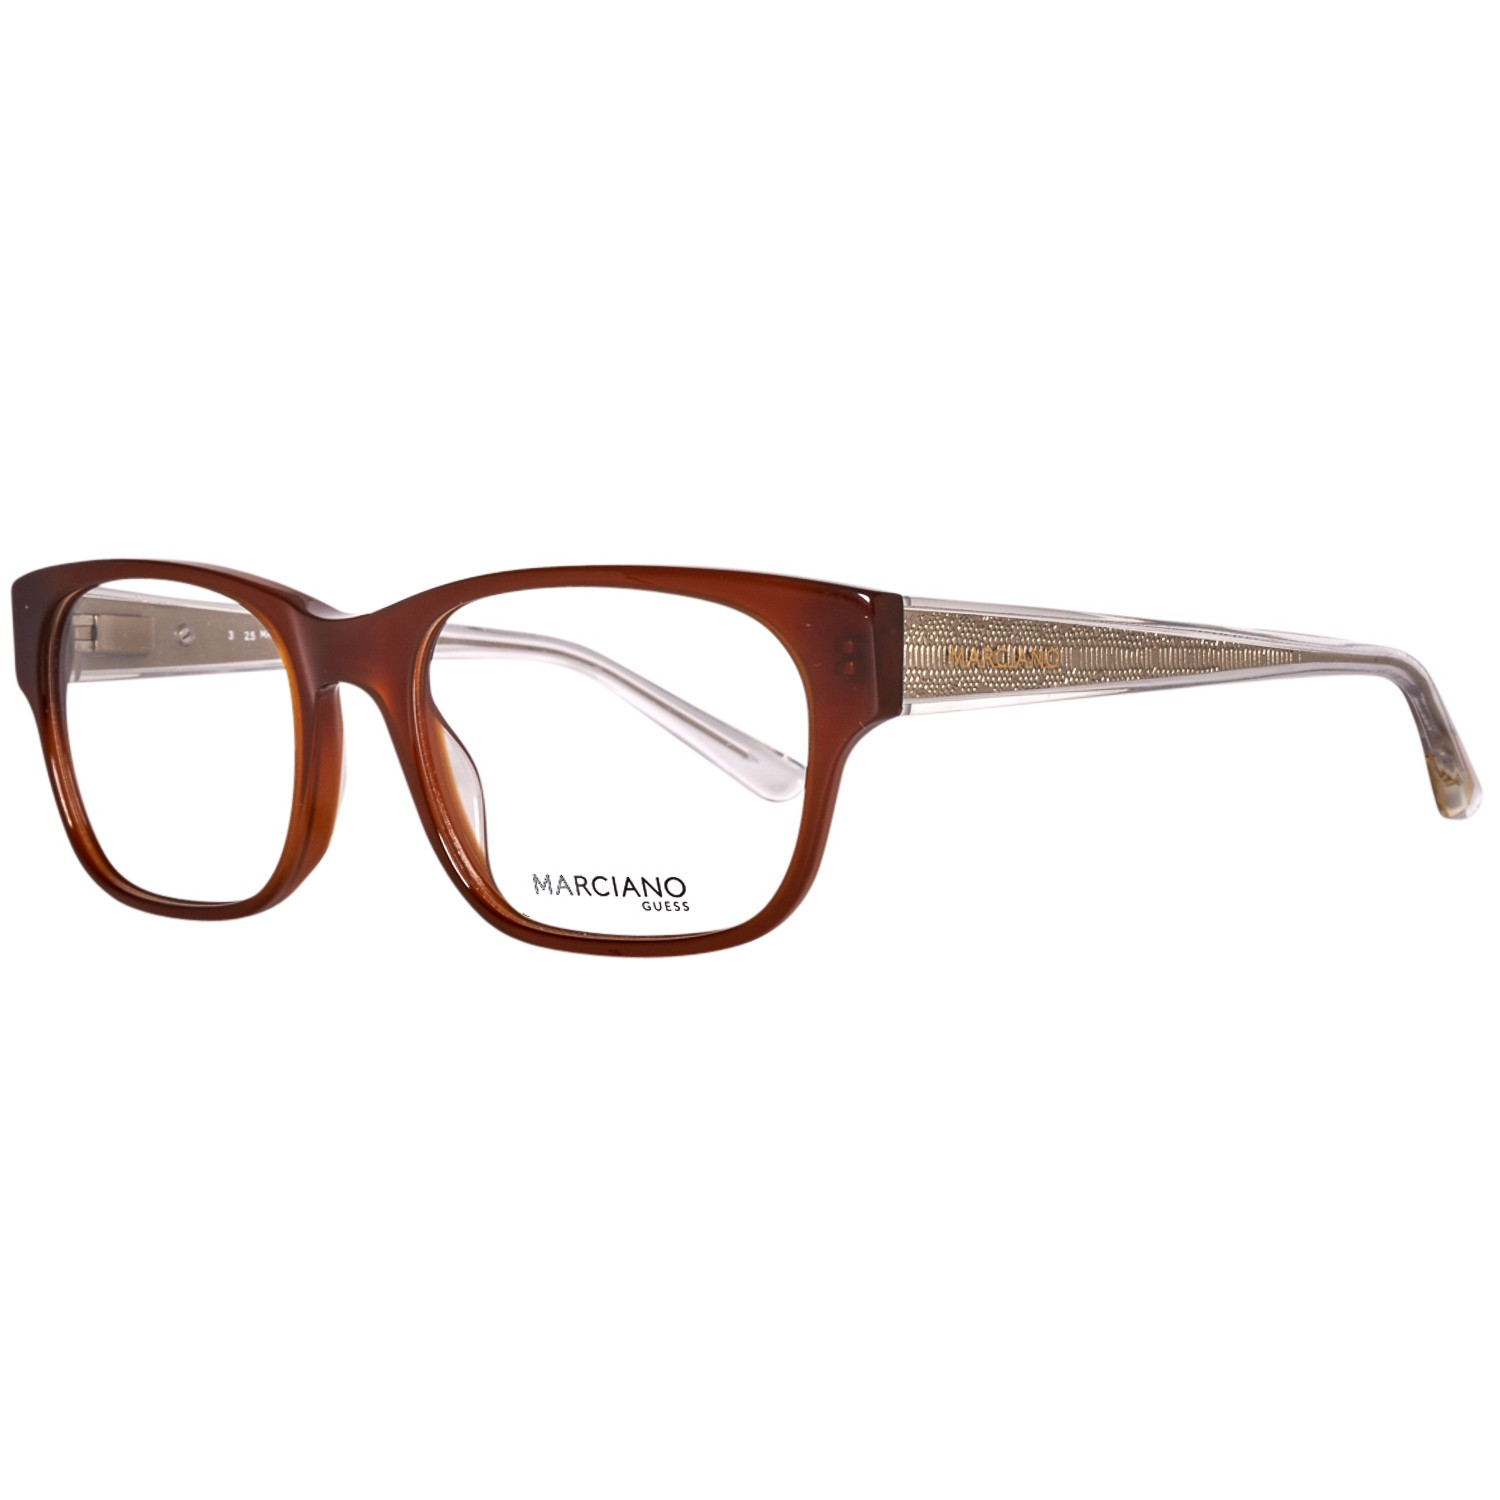 Guess By Marciano Optical Frame GM0264 050 51 Brown